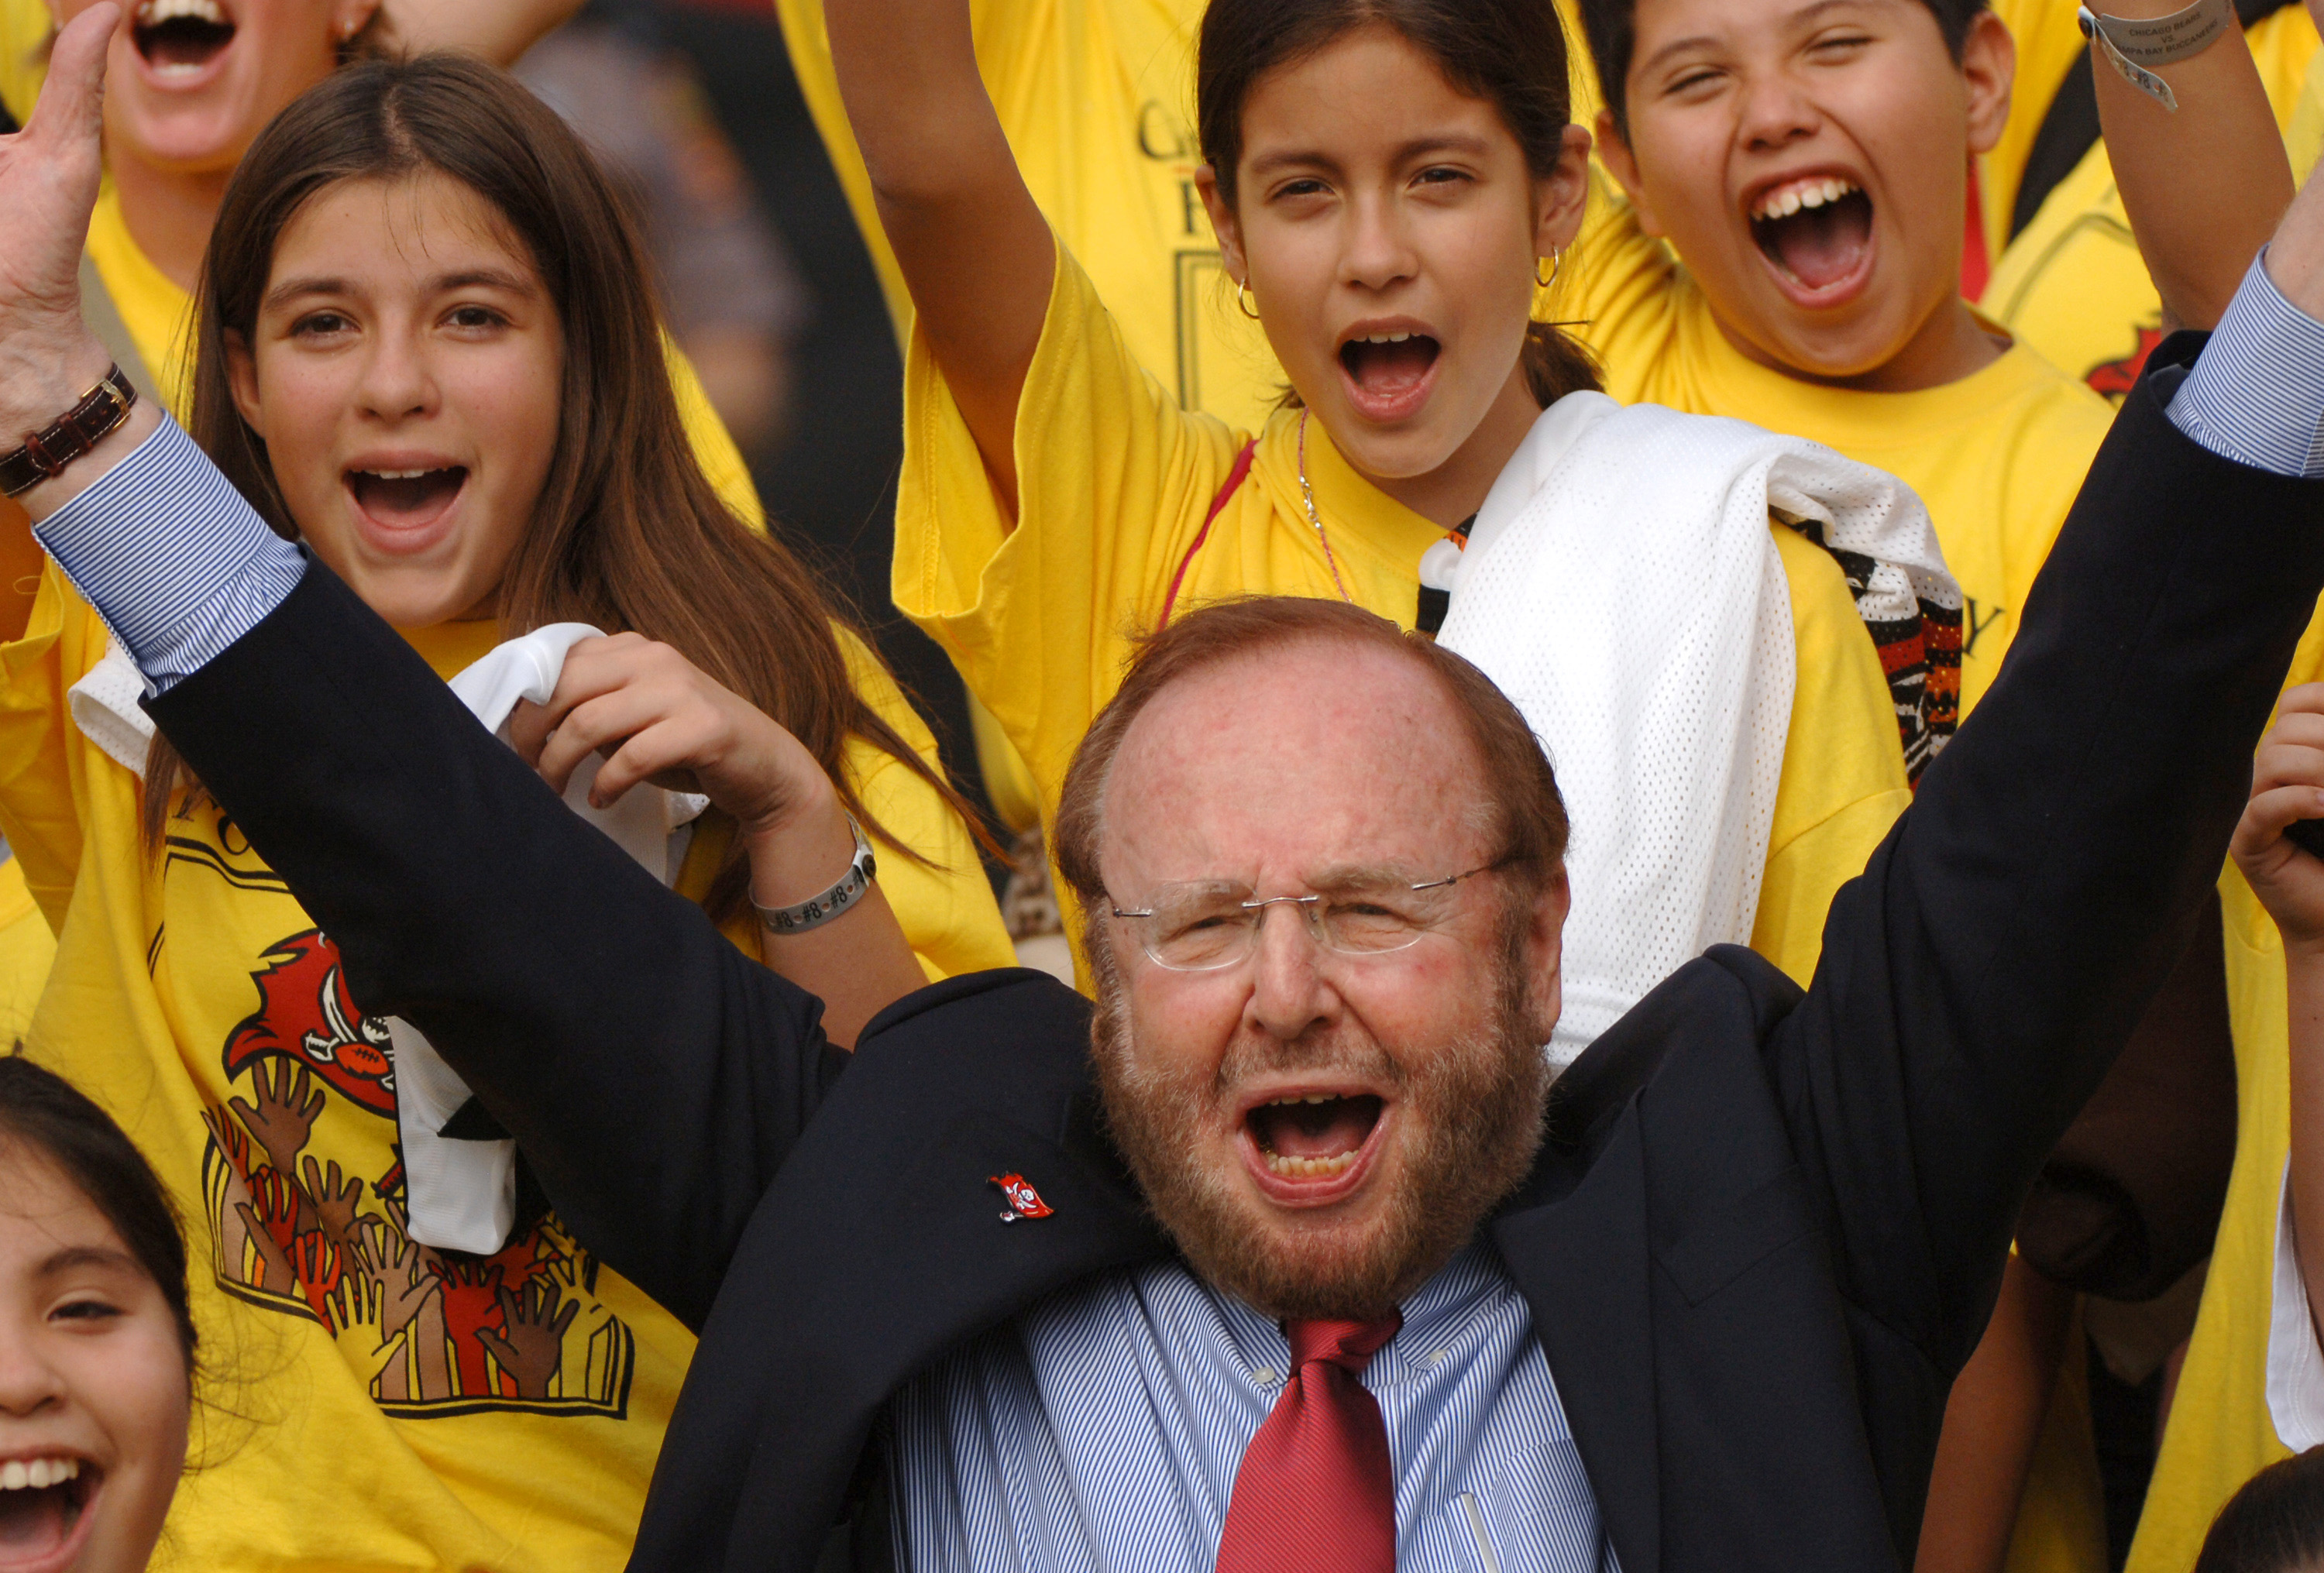 Tampa Bay Buccaneers owner Malcolm Glazer before play in 2005